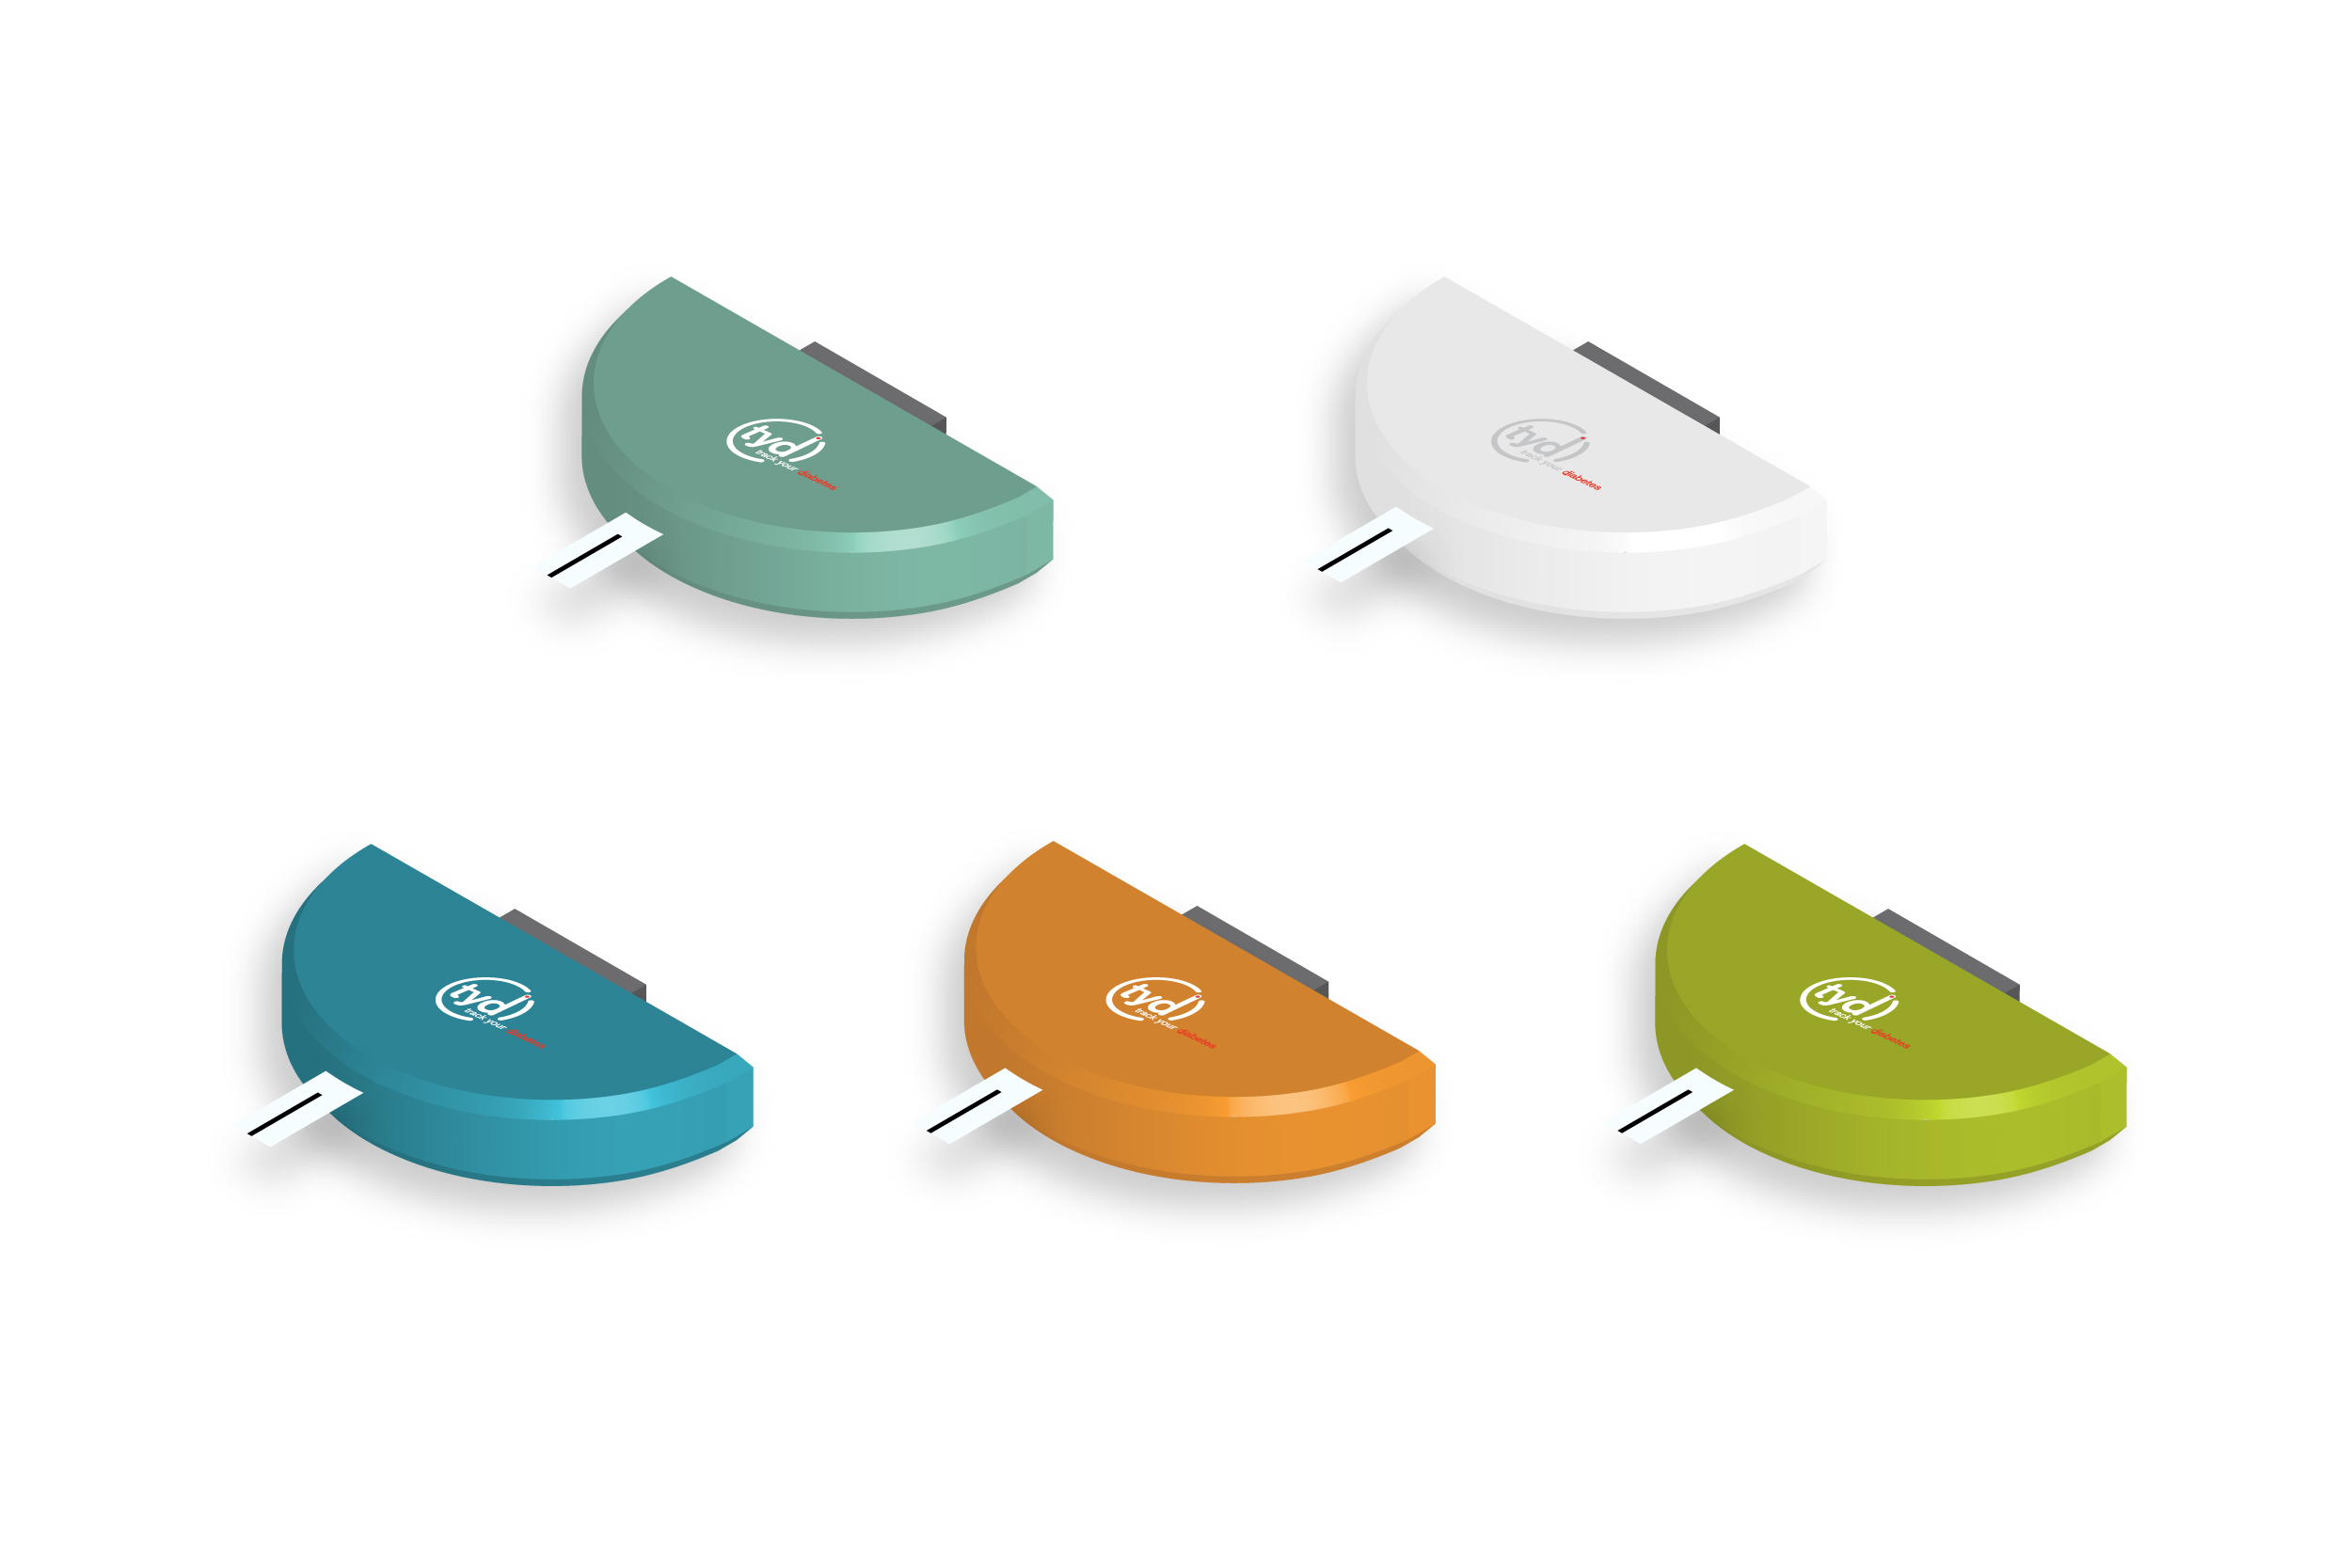 TYD glucose meters and color variations